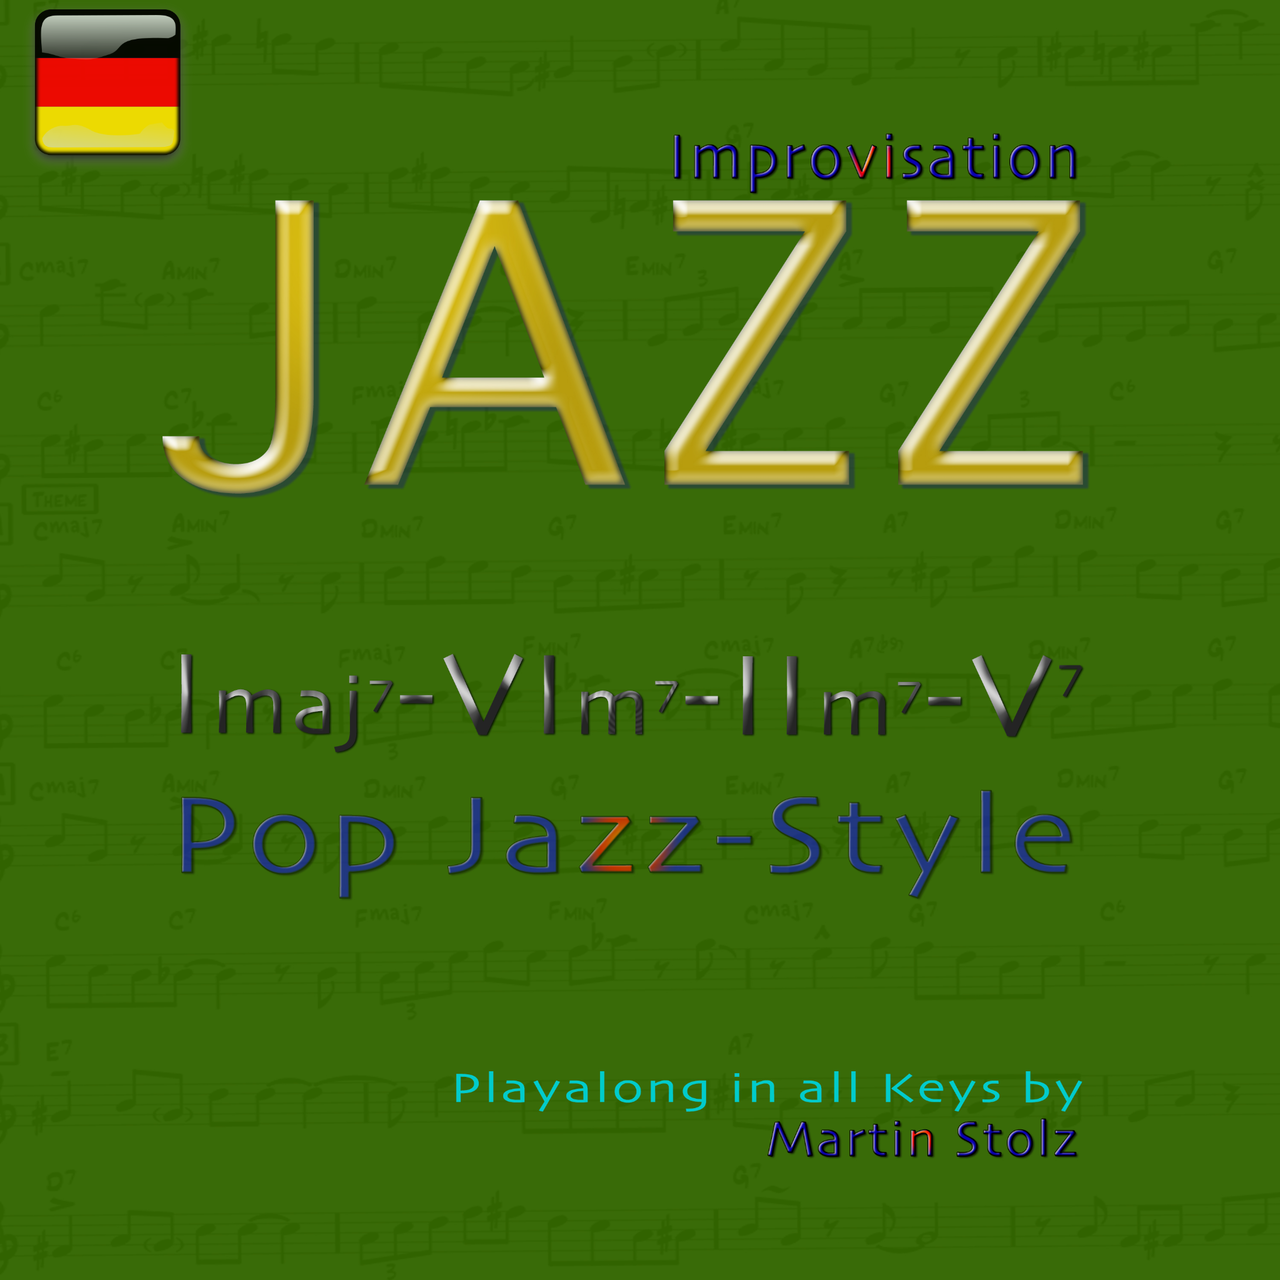 Imaj7-VIm7-IIm7-V7 in Pop Jazz Style de